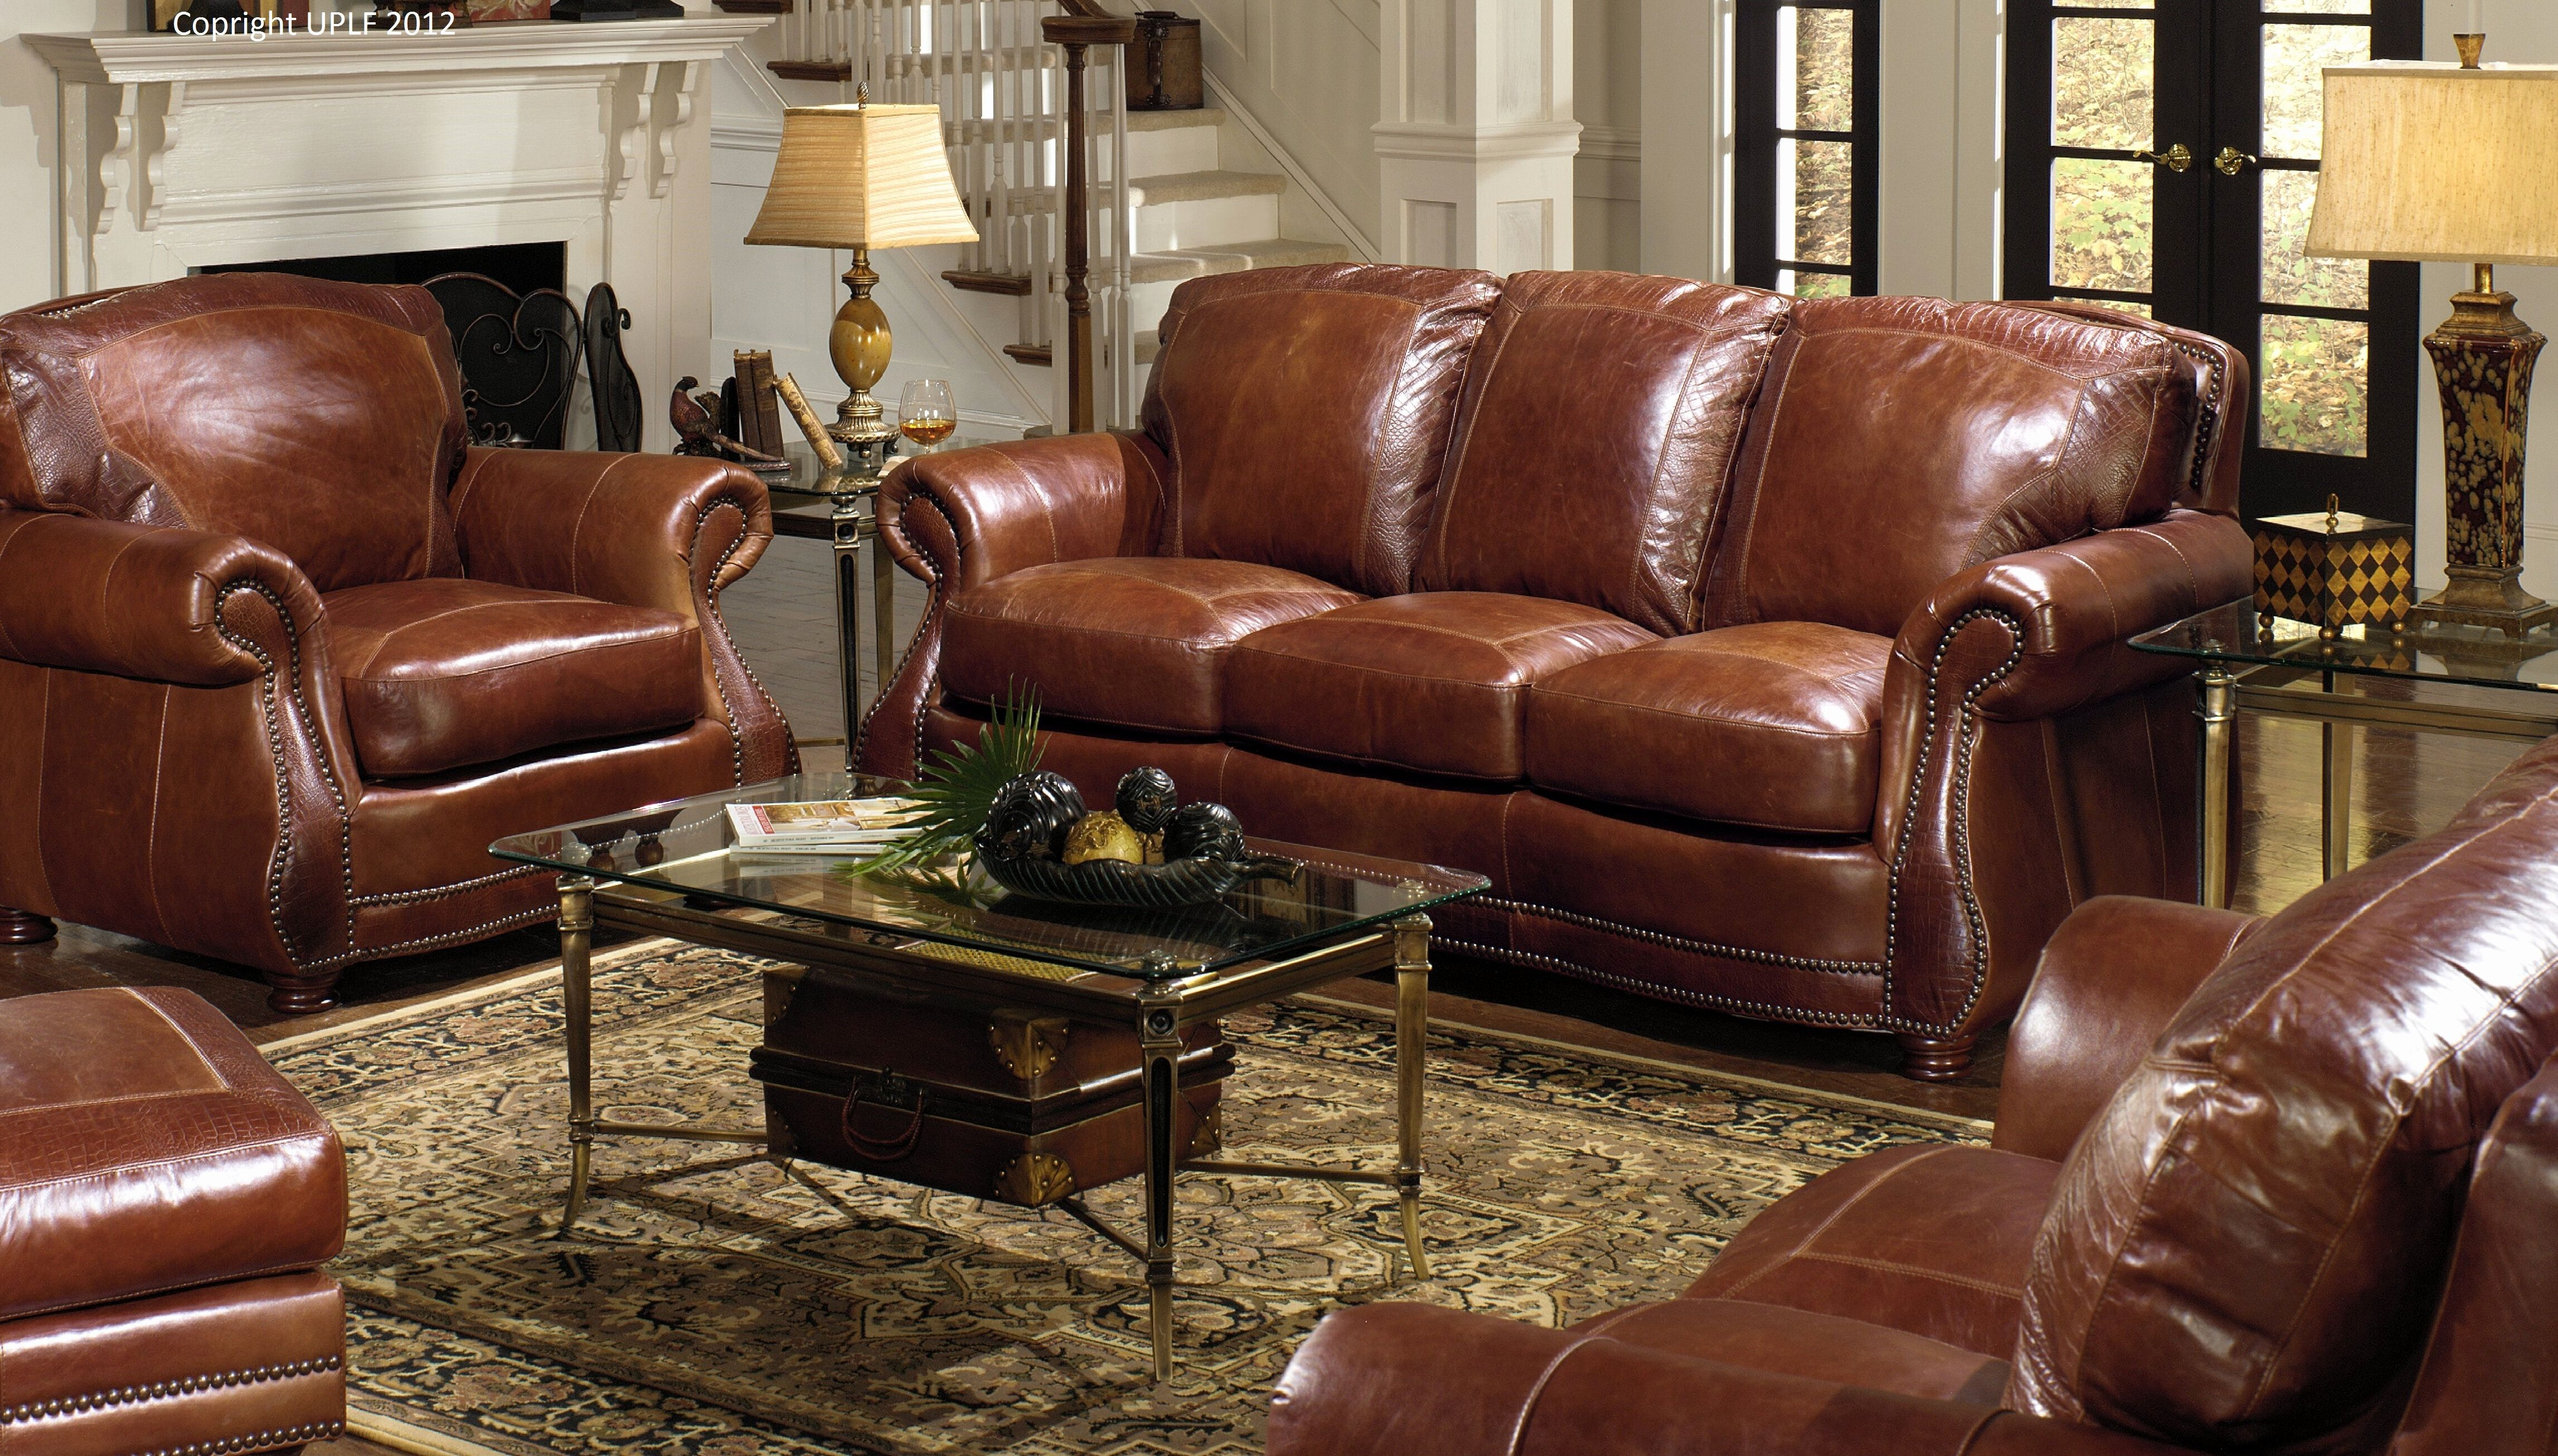 Luxury Usa Leather Cowboy Sofa Pics Premium Furniture Check More At Http